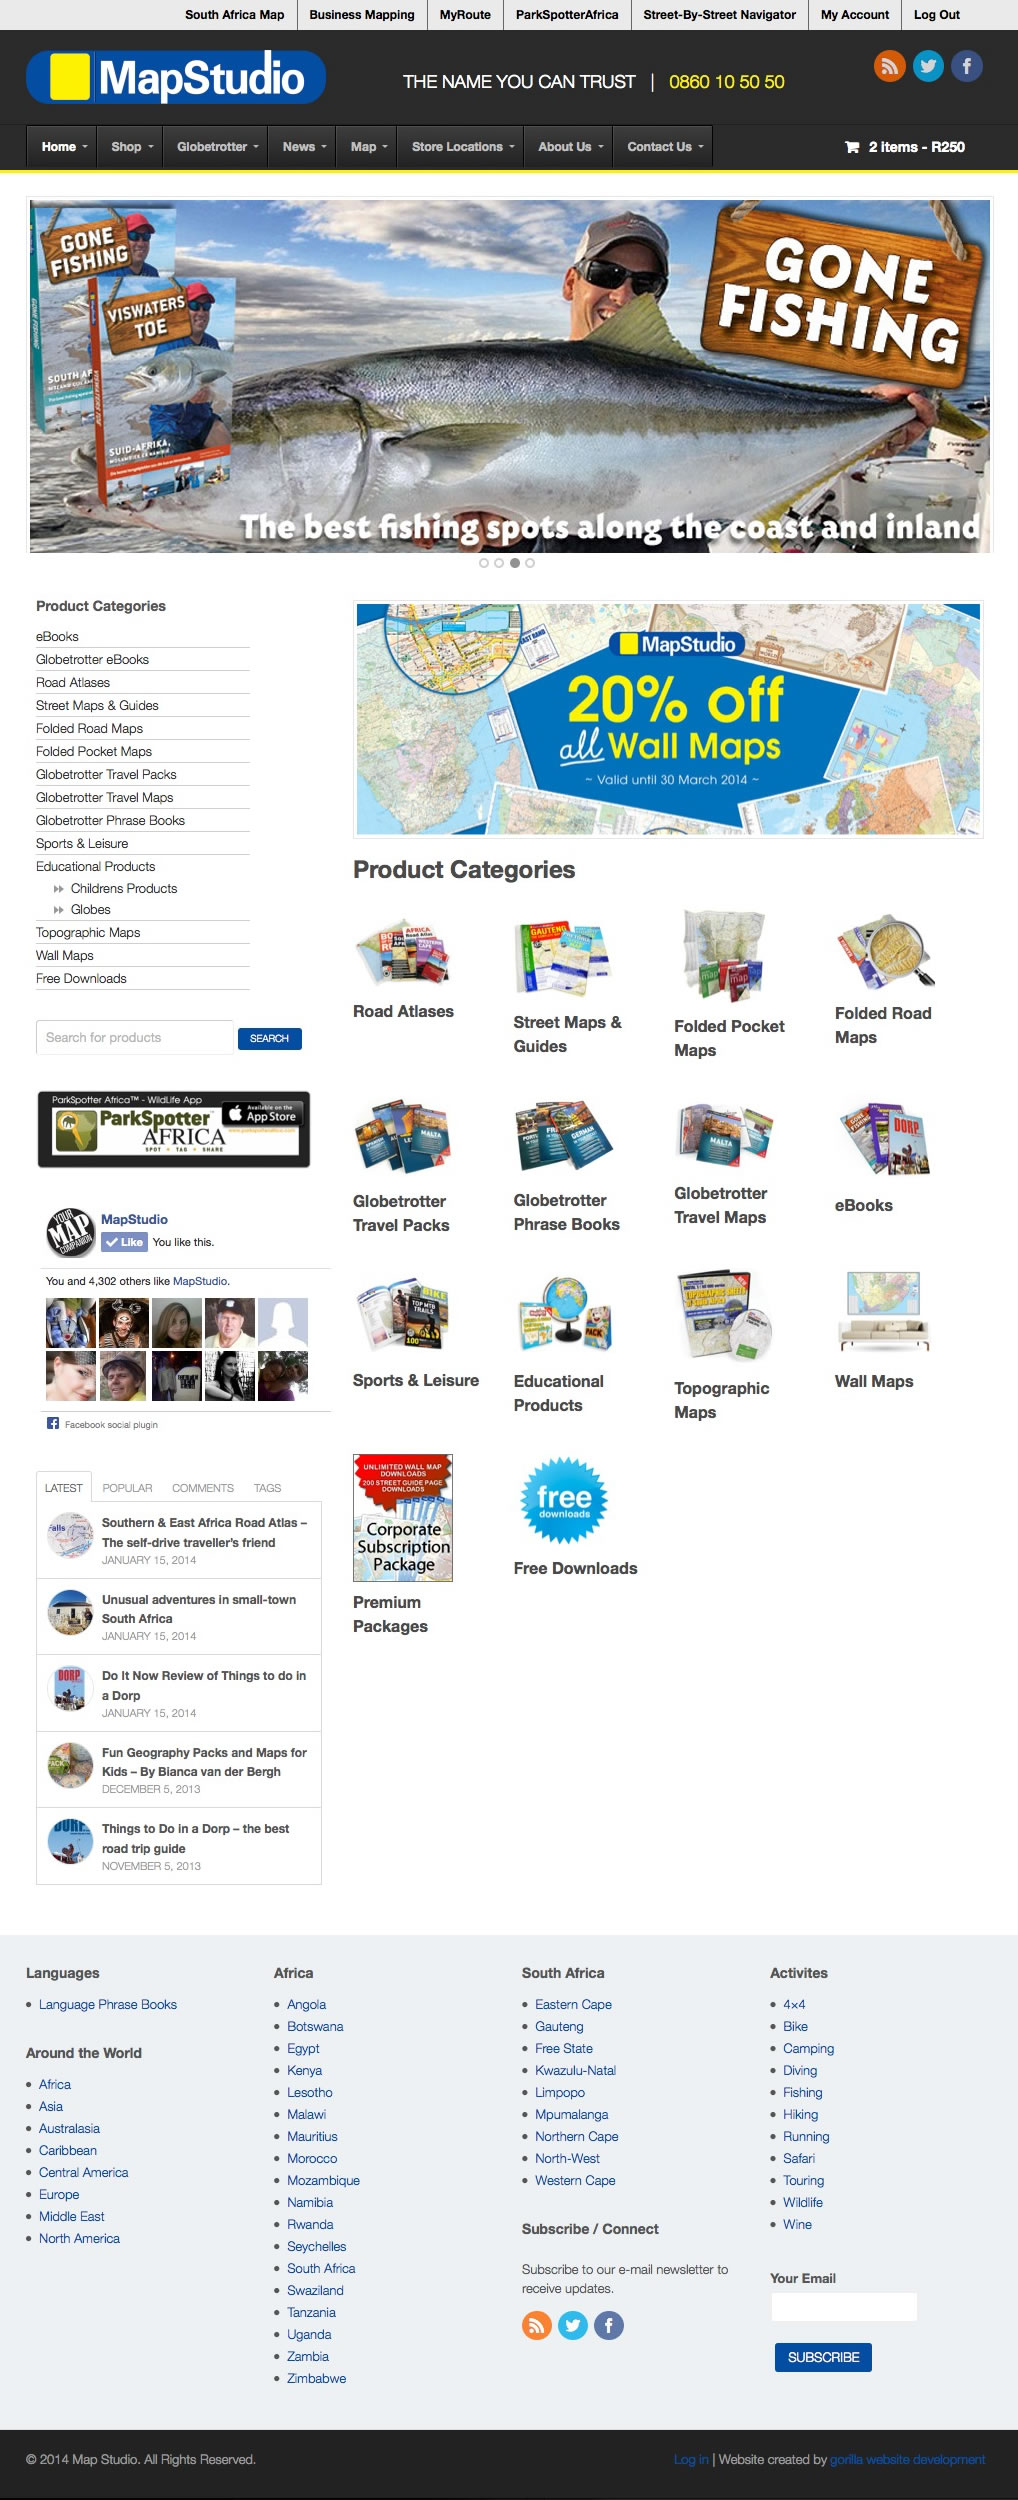 Mapstudio website screenshot